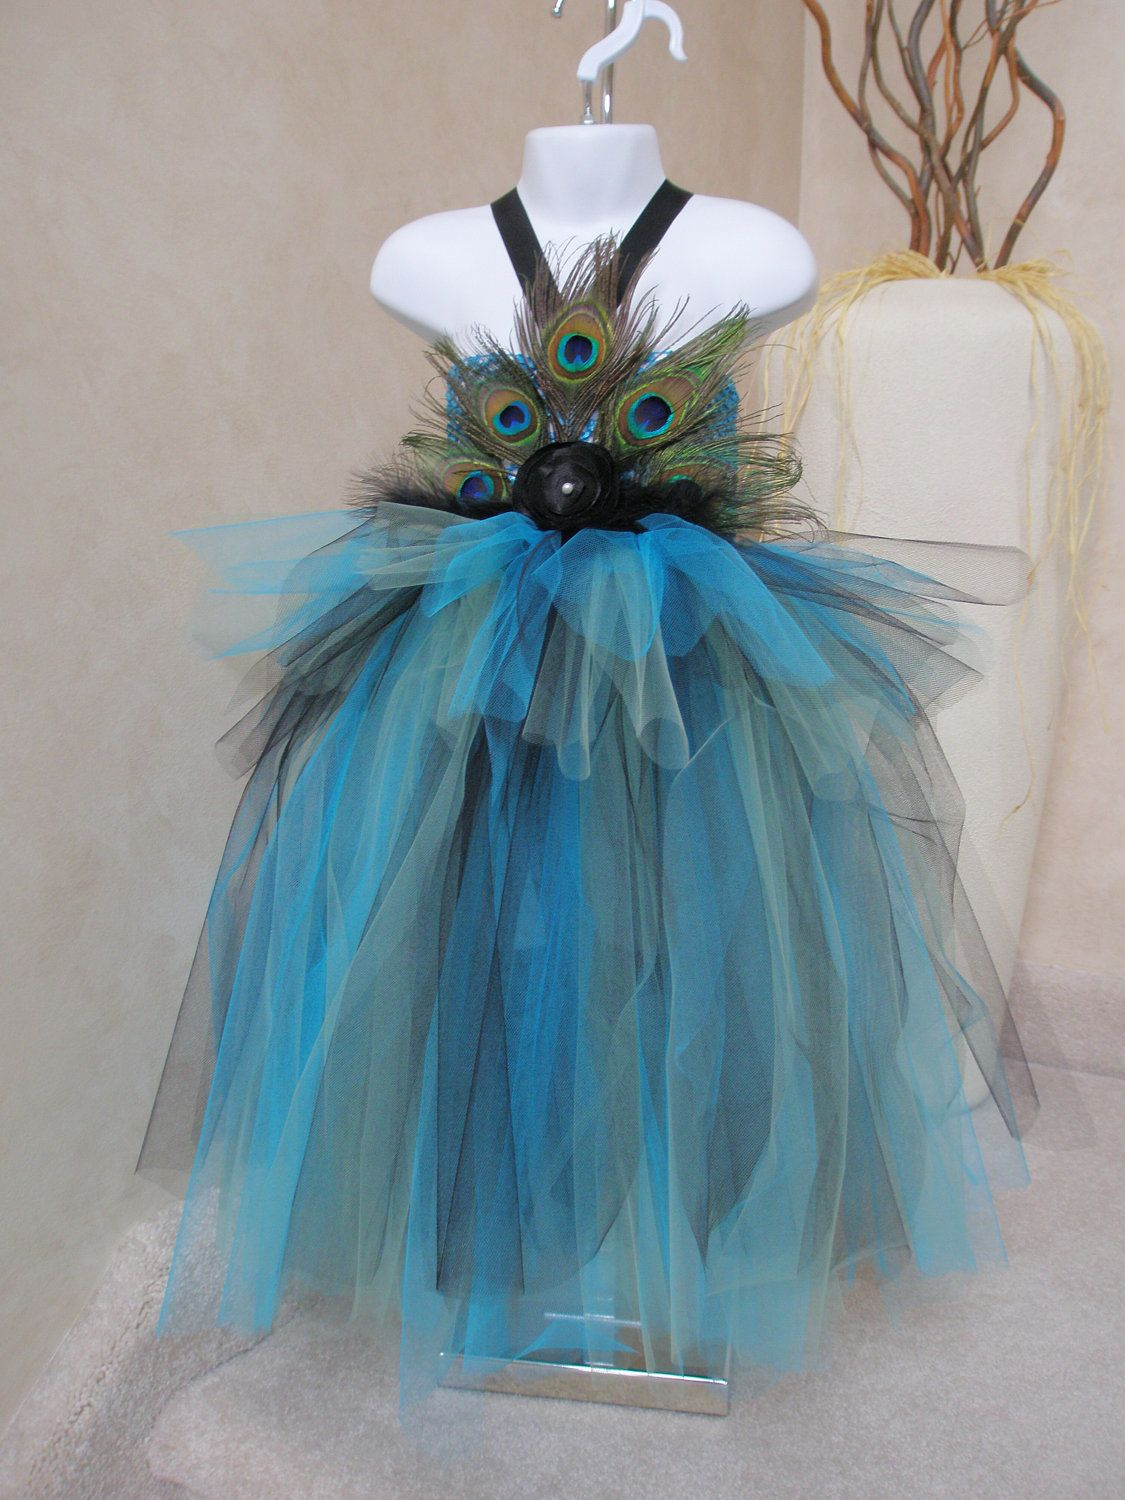 Peacock tutu dress/costume. Crocheted top with peacock feathers ...